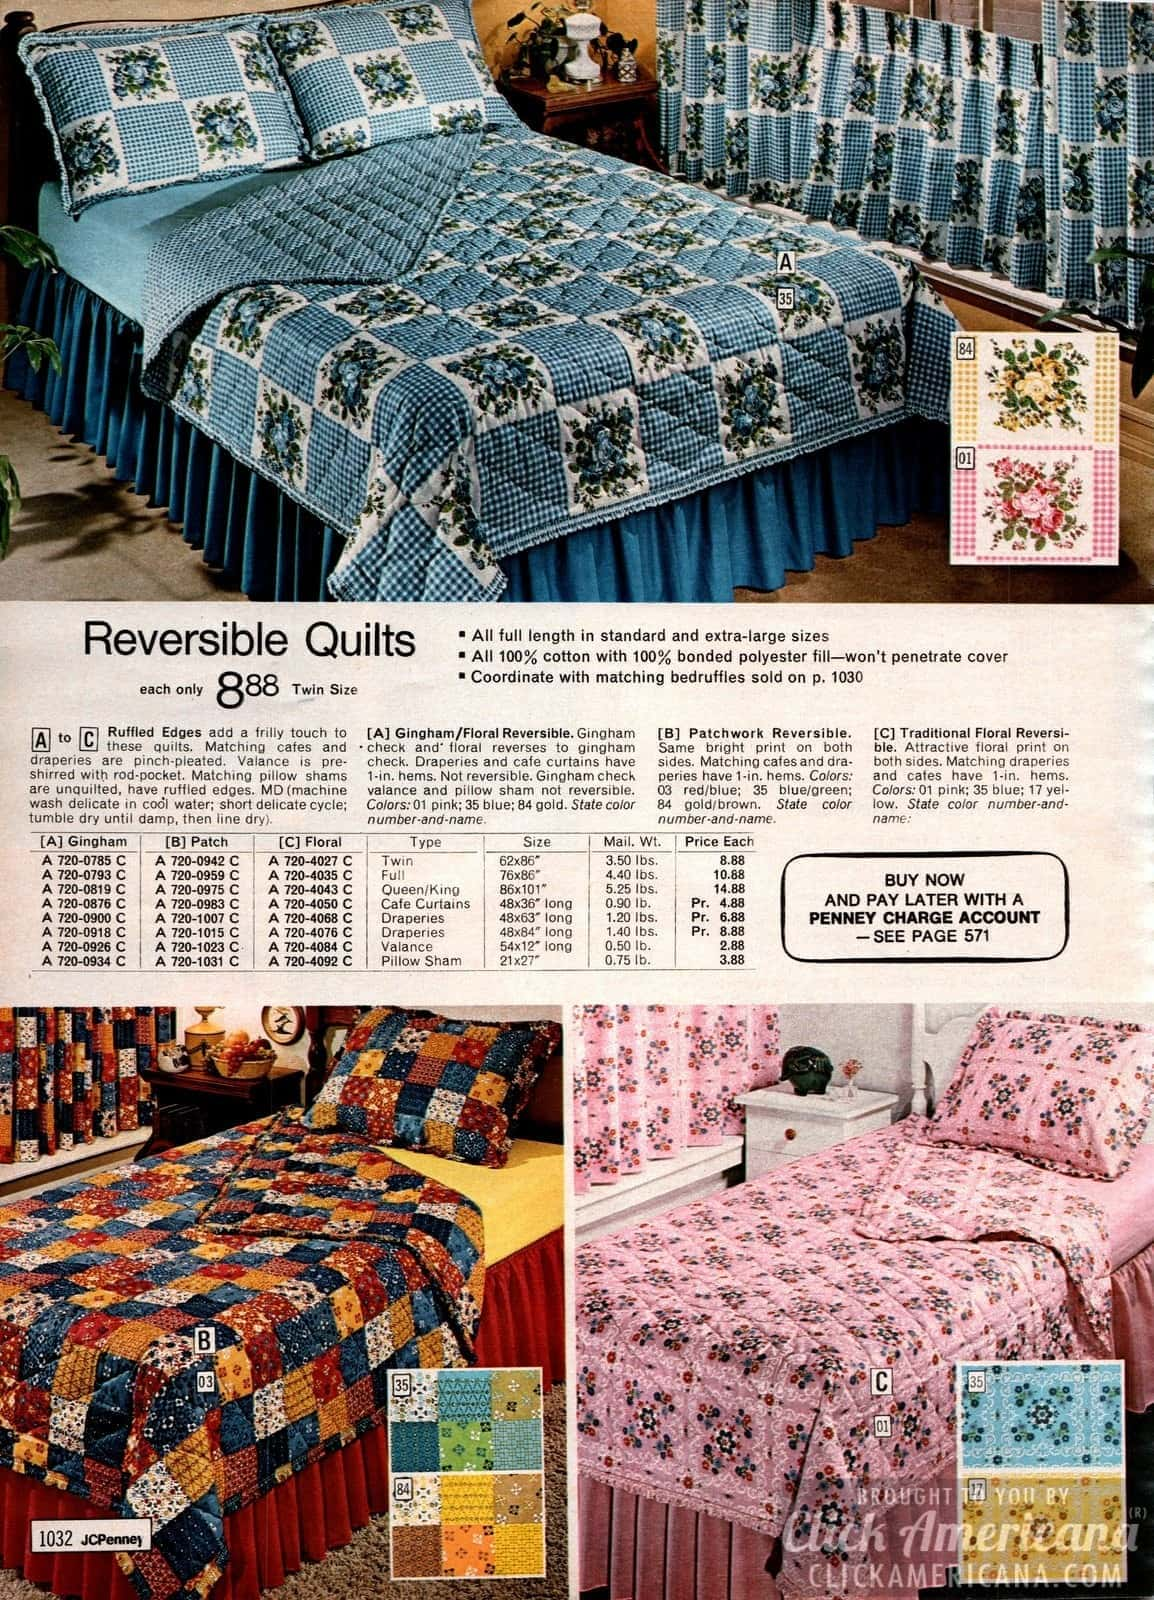 Reversible quilts in patchwork and ginghams